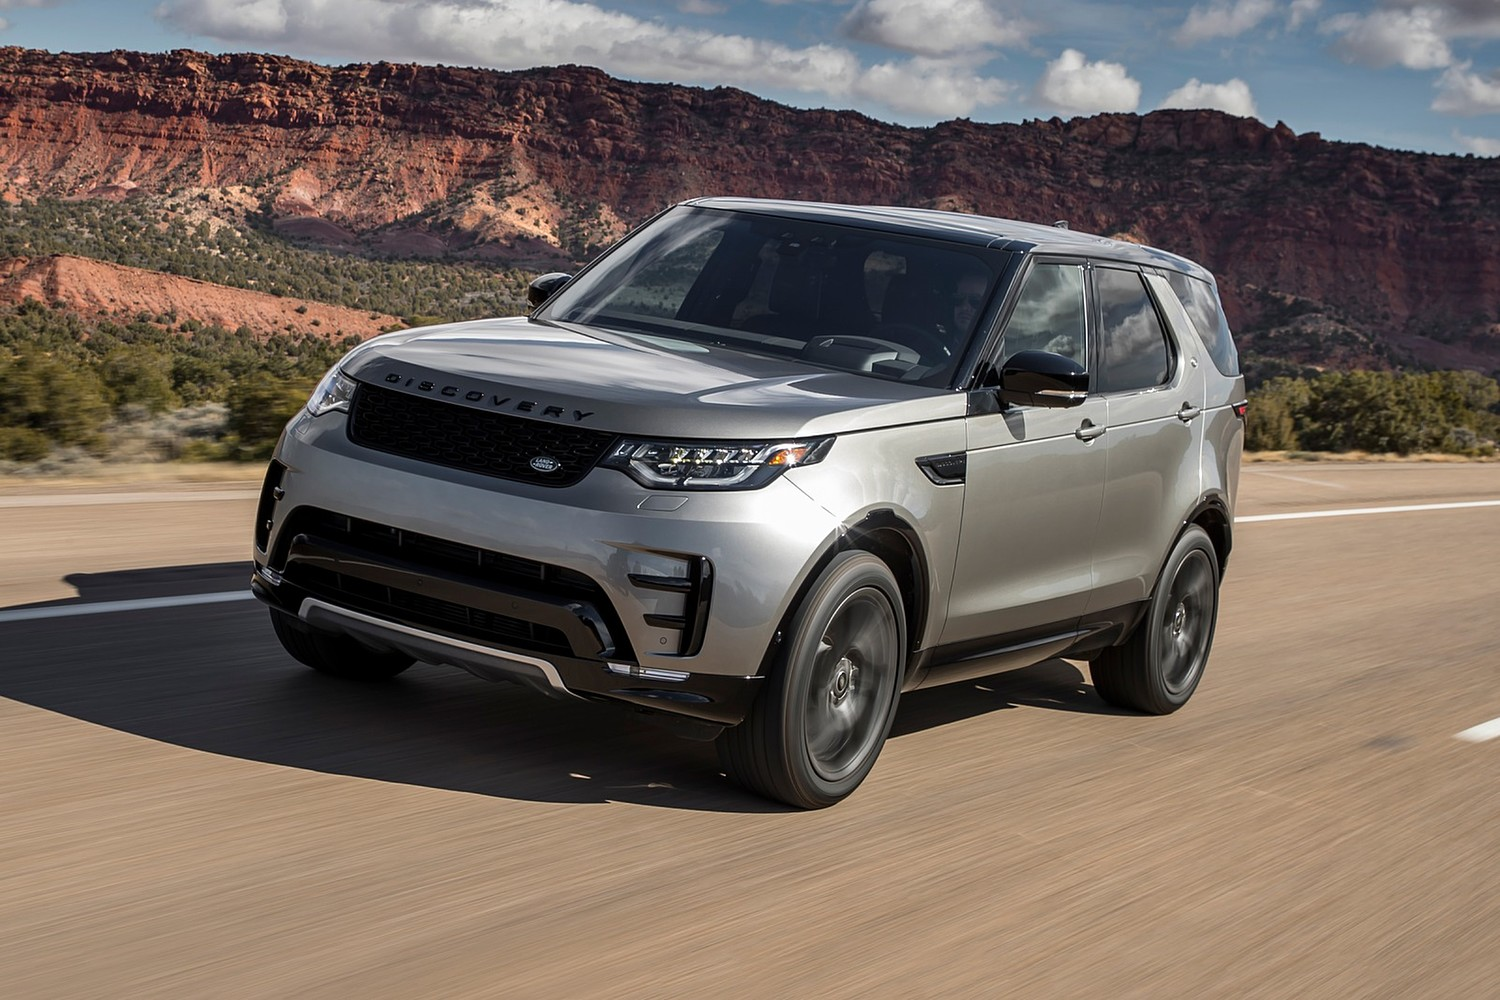 2018 Land Rover Discovery HSE Td6 4dr SUV Exterior. Dynamic Package Shown.